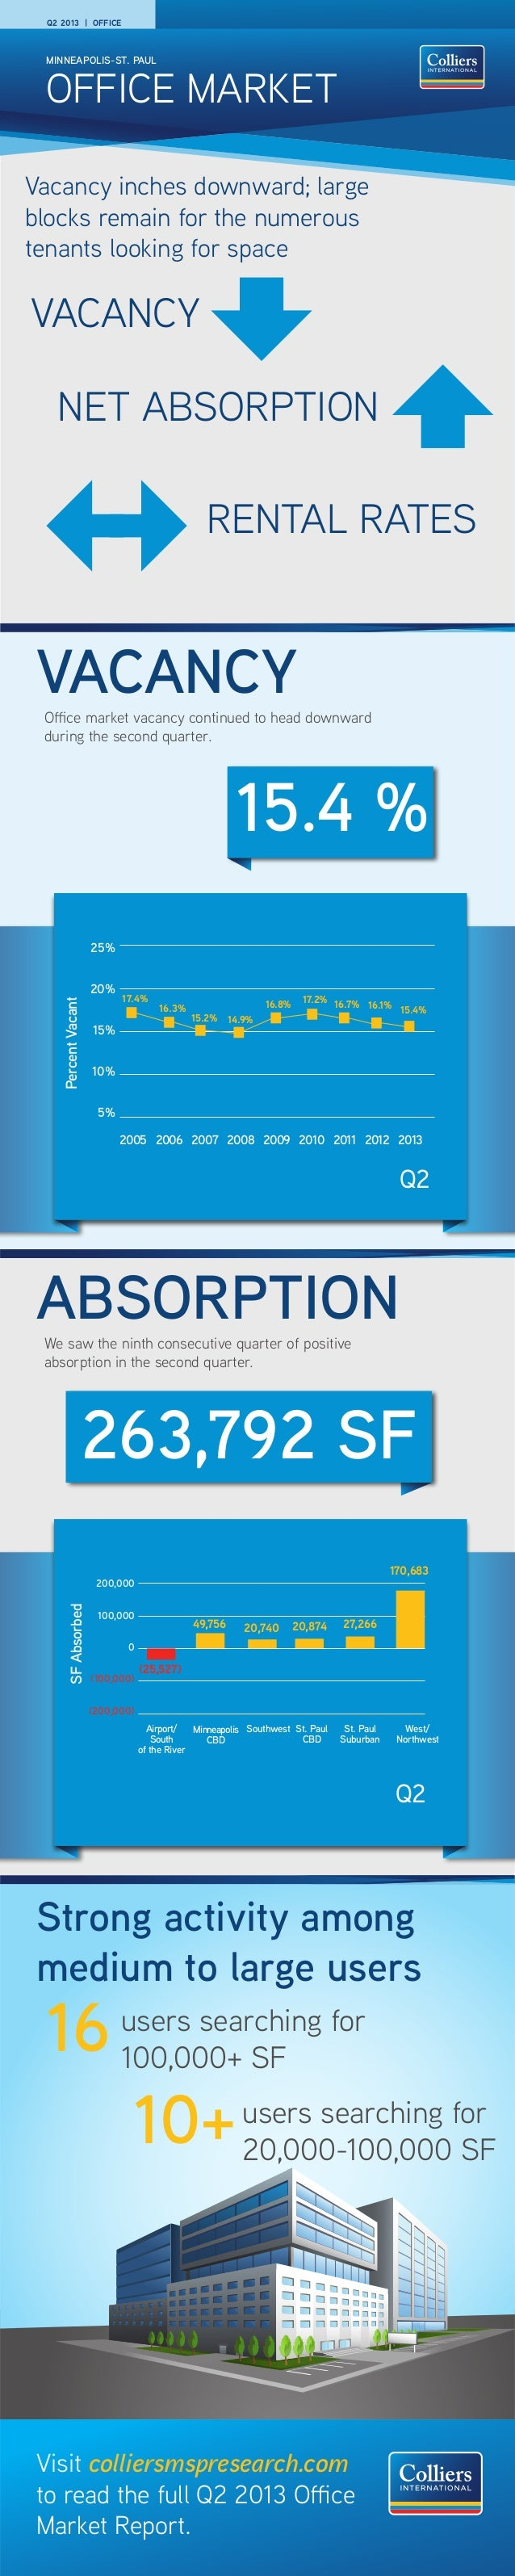 Minneapolis-St. Paul Office Market Report [Infographic] Q2 2013